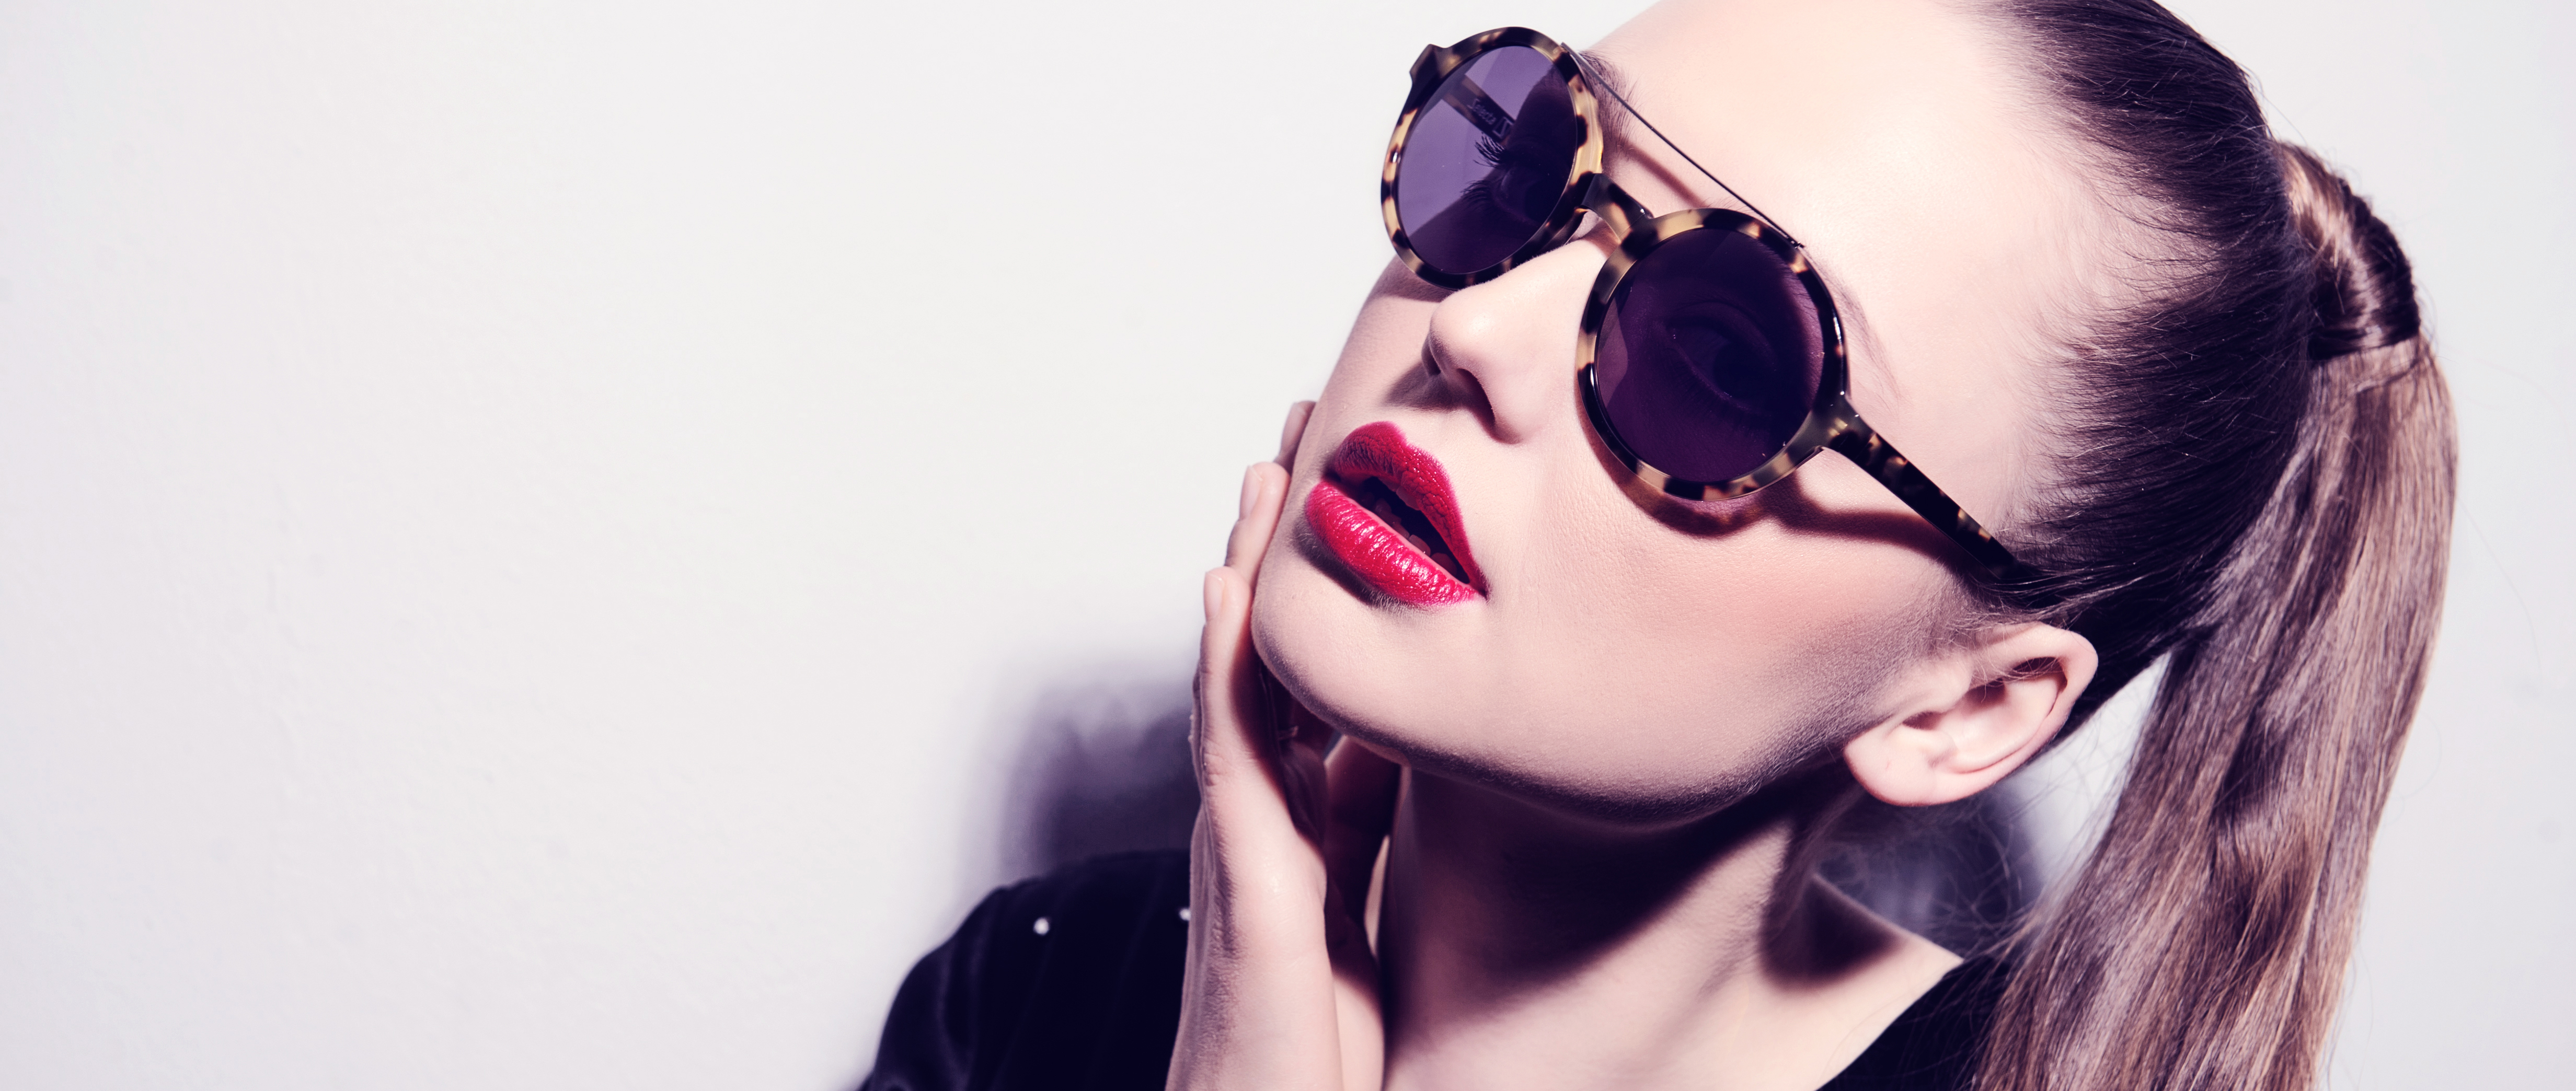 Eyeglass Frames On Models : Sunglasses Archives - Eyewear